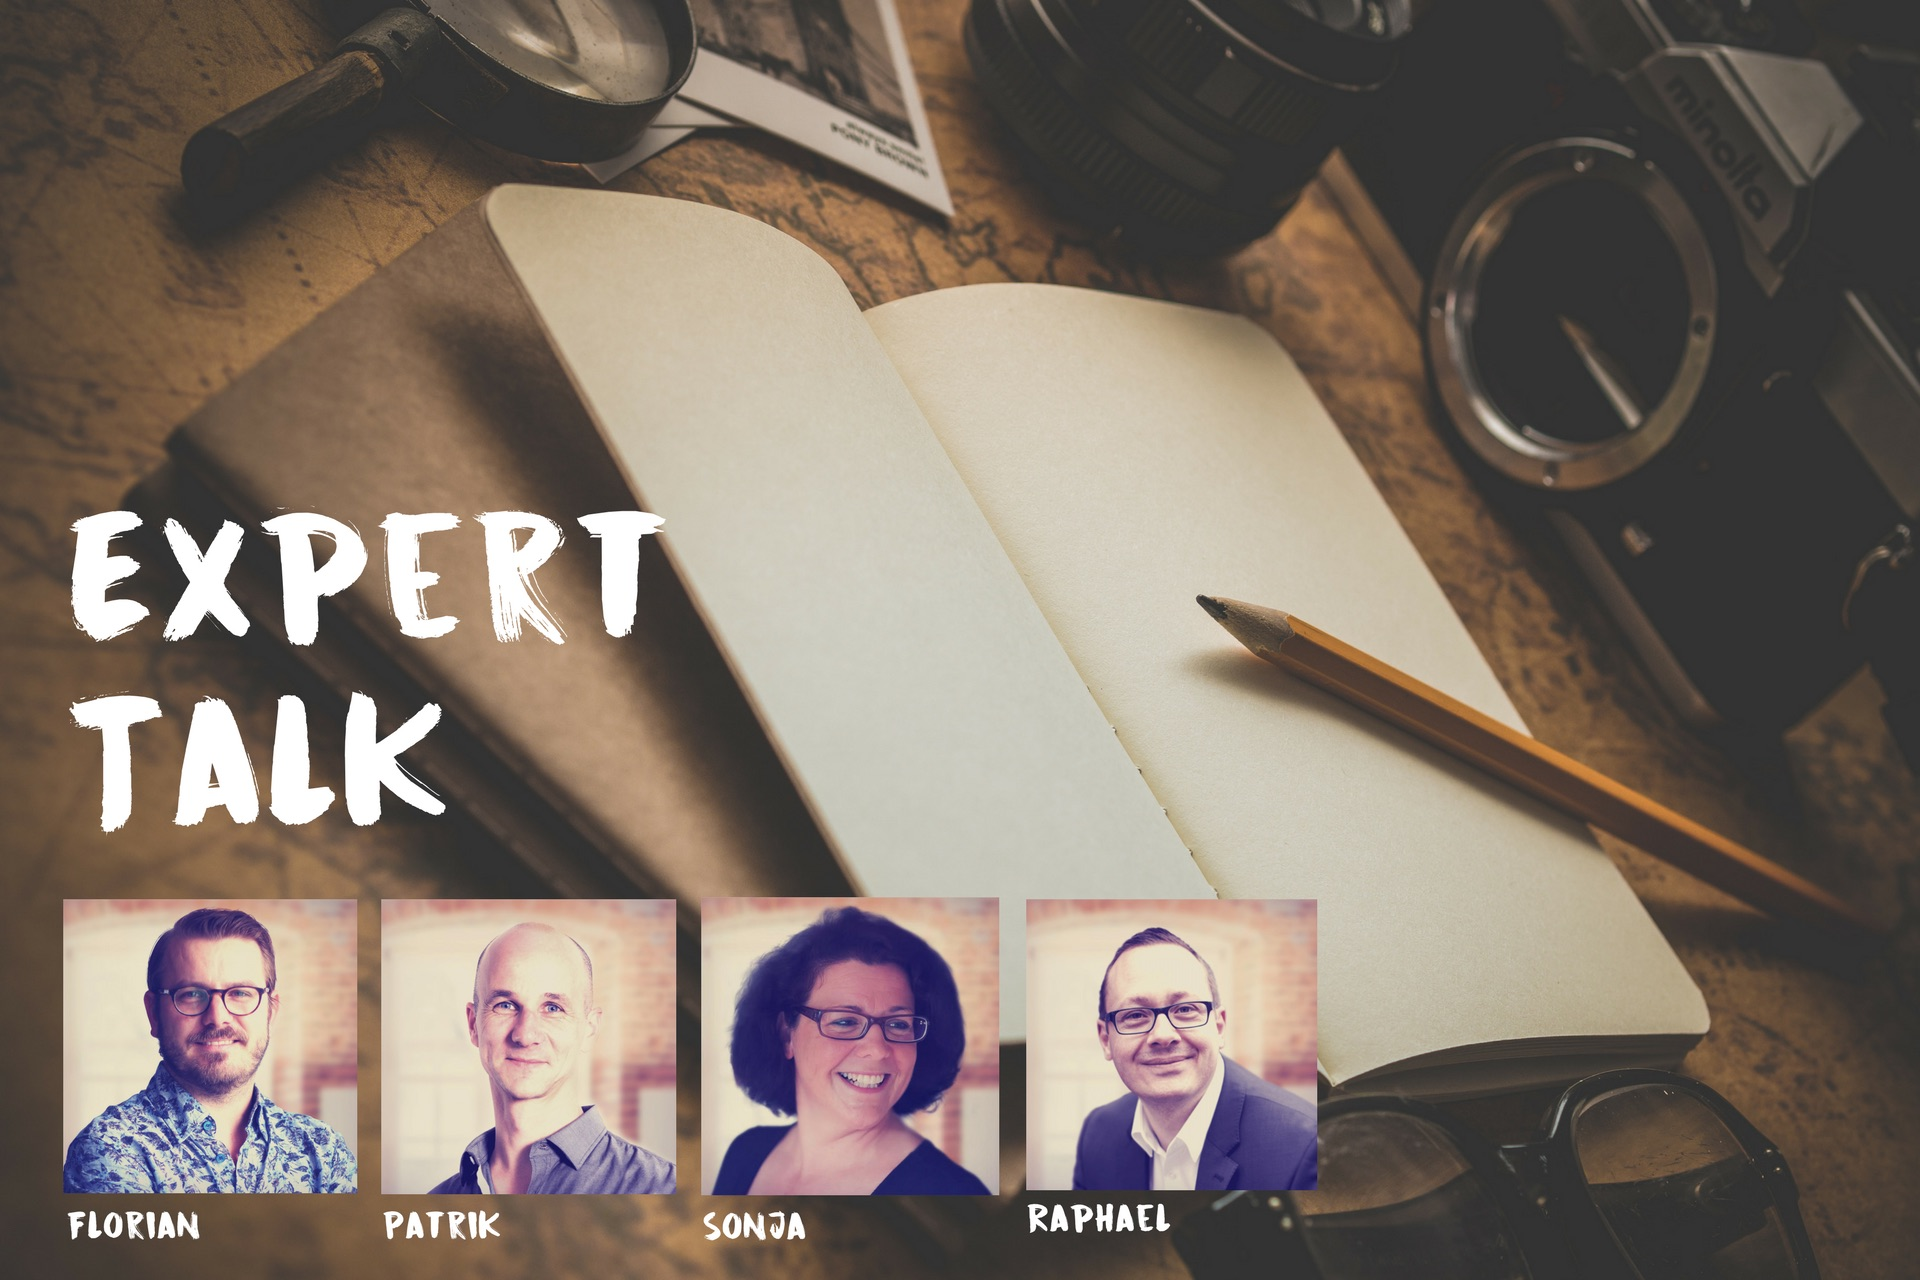 expert-talk-blog-header.jpg